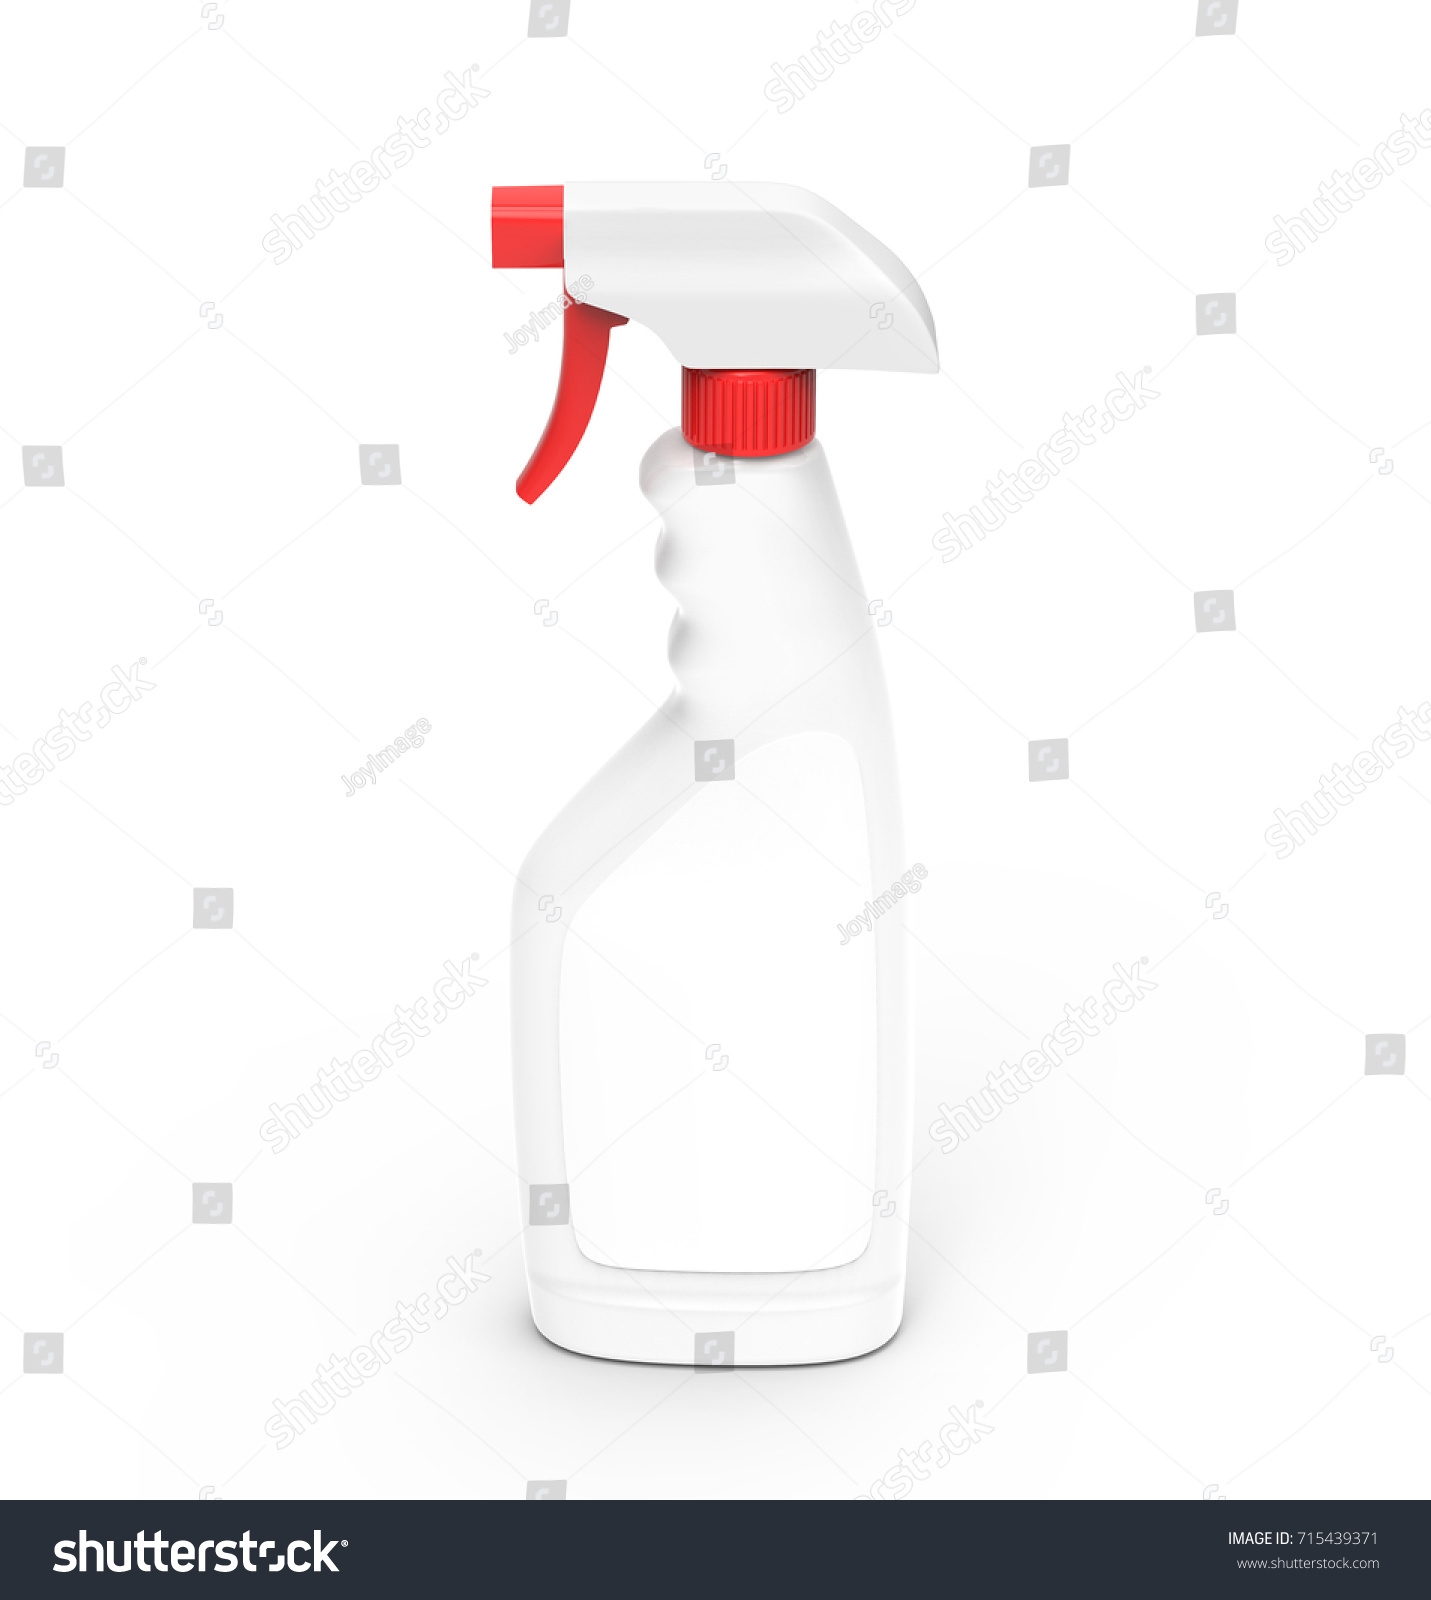 Glass Cleaner Mockup 3d Rendering Spray Bottle Template With Red Lid And Blank Label